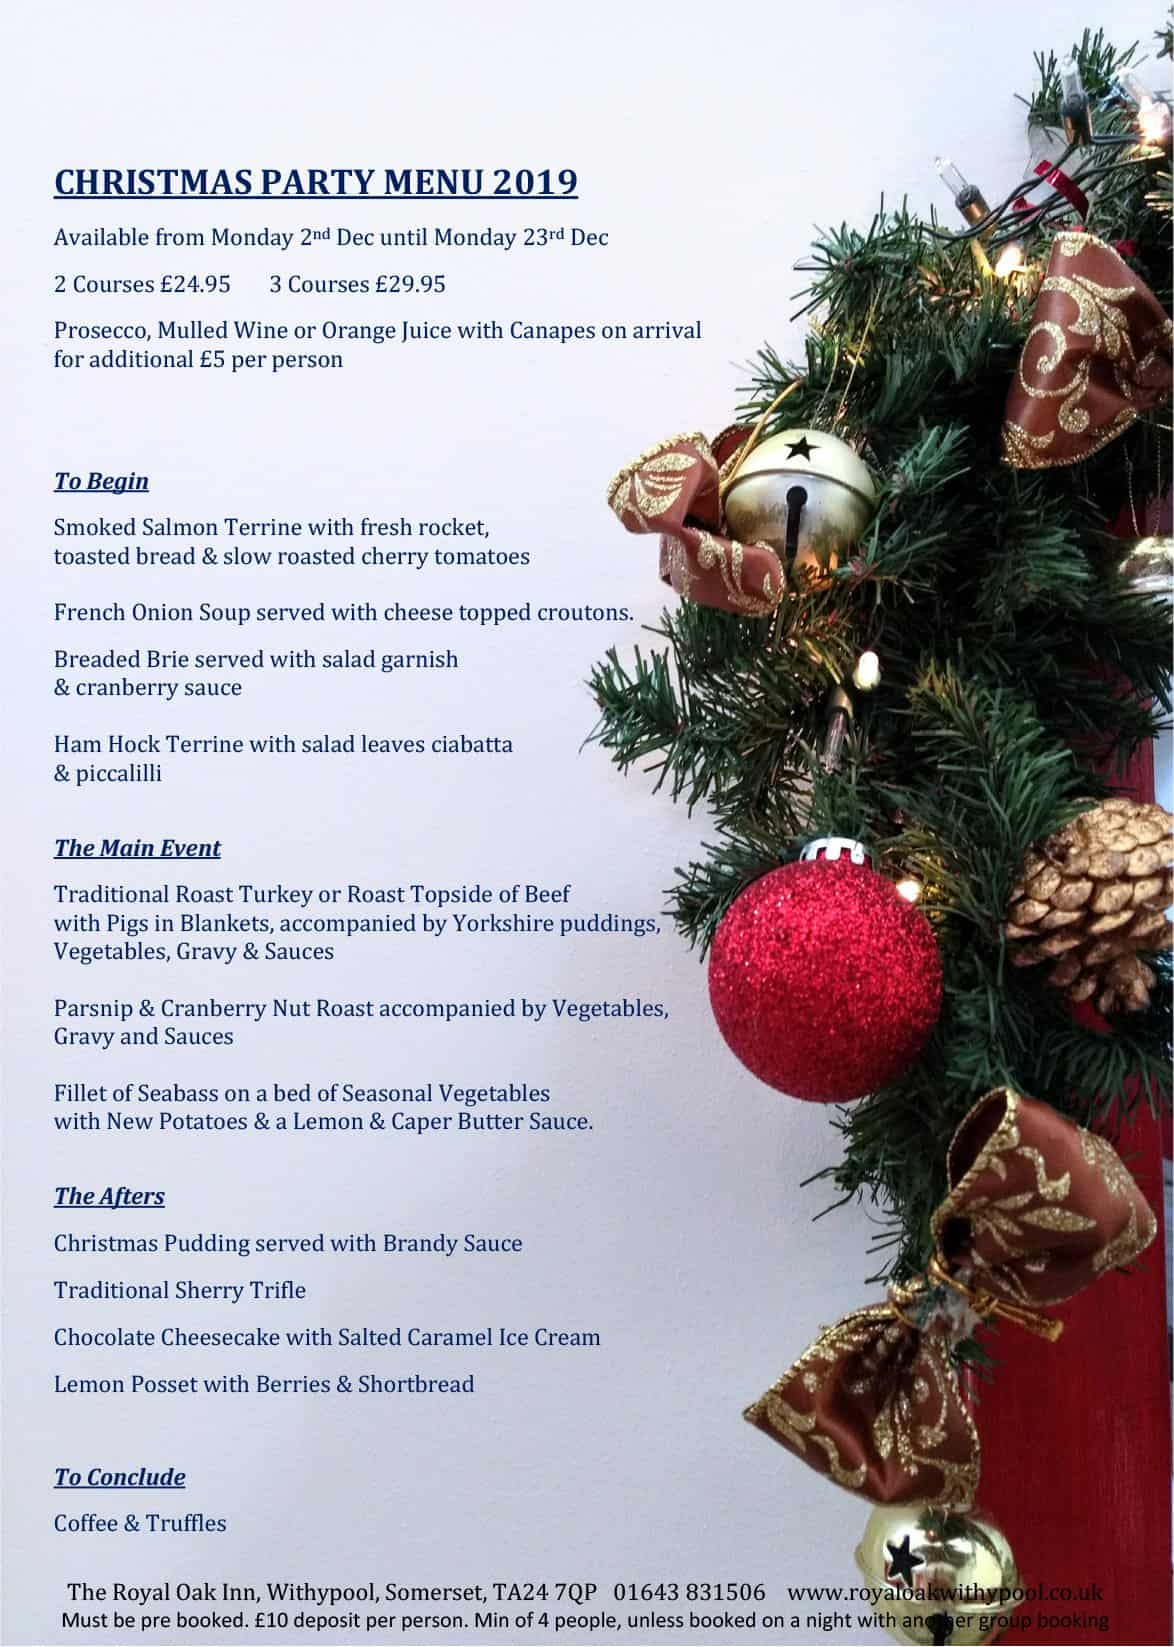 Christmas party menu 2019